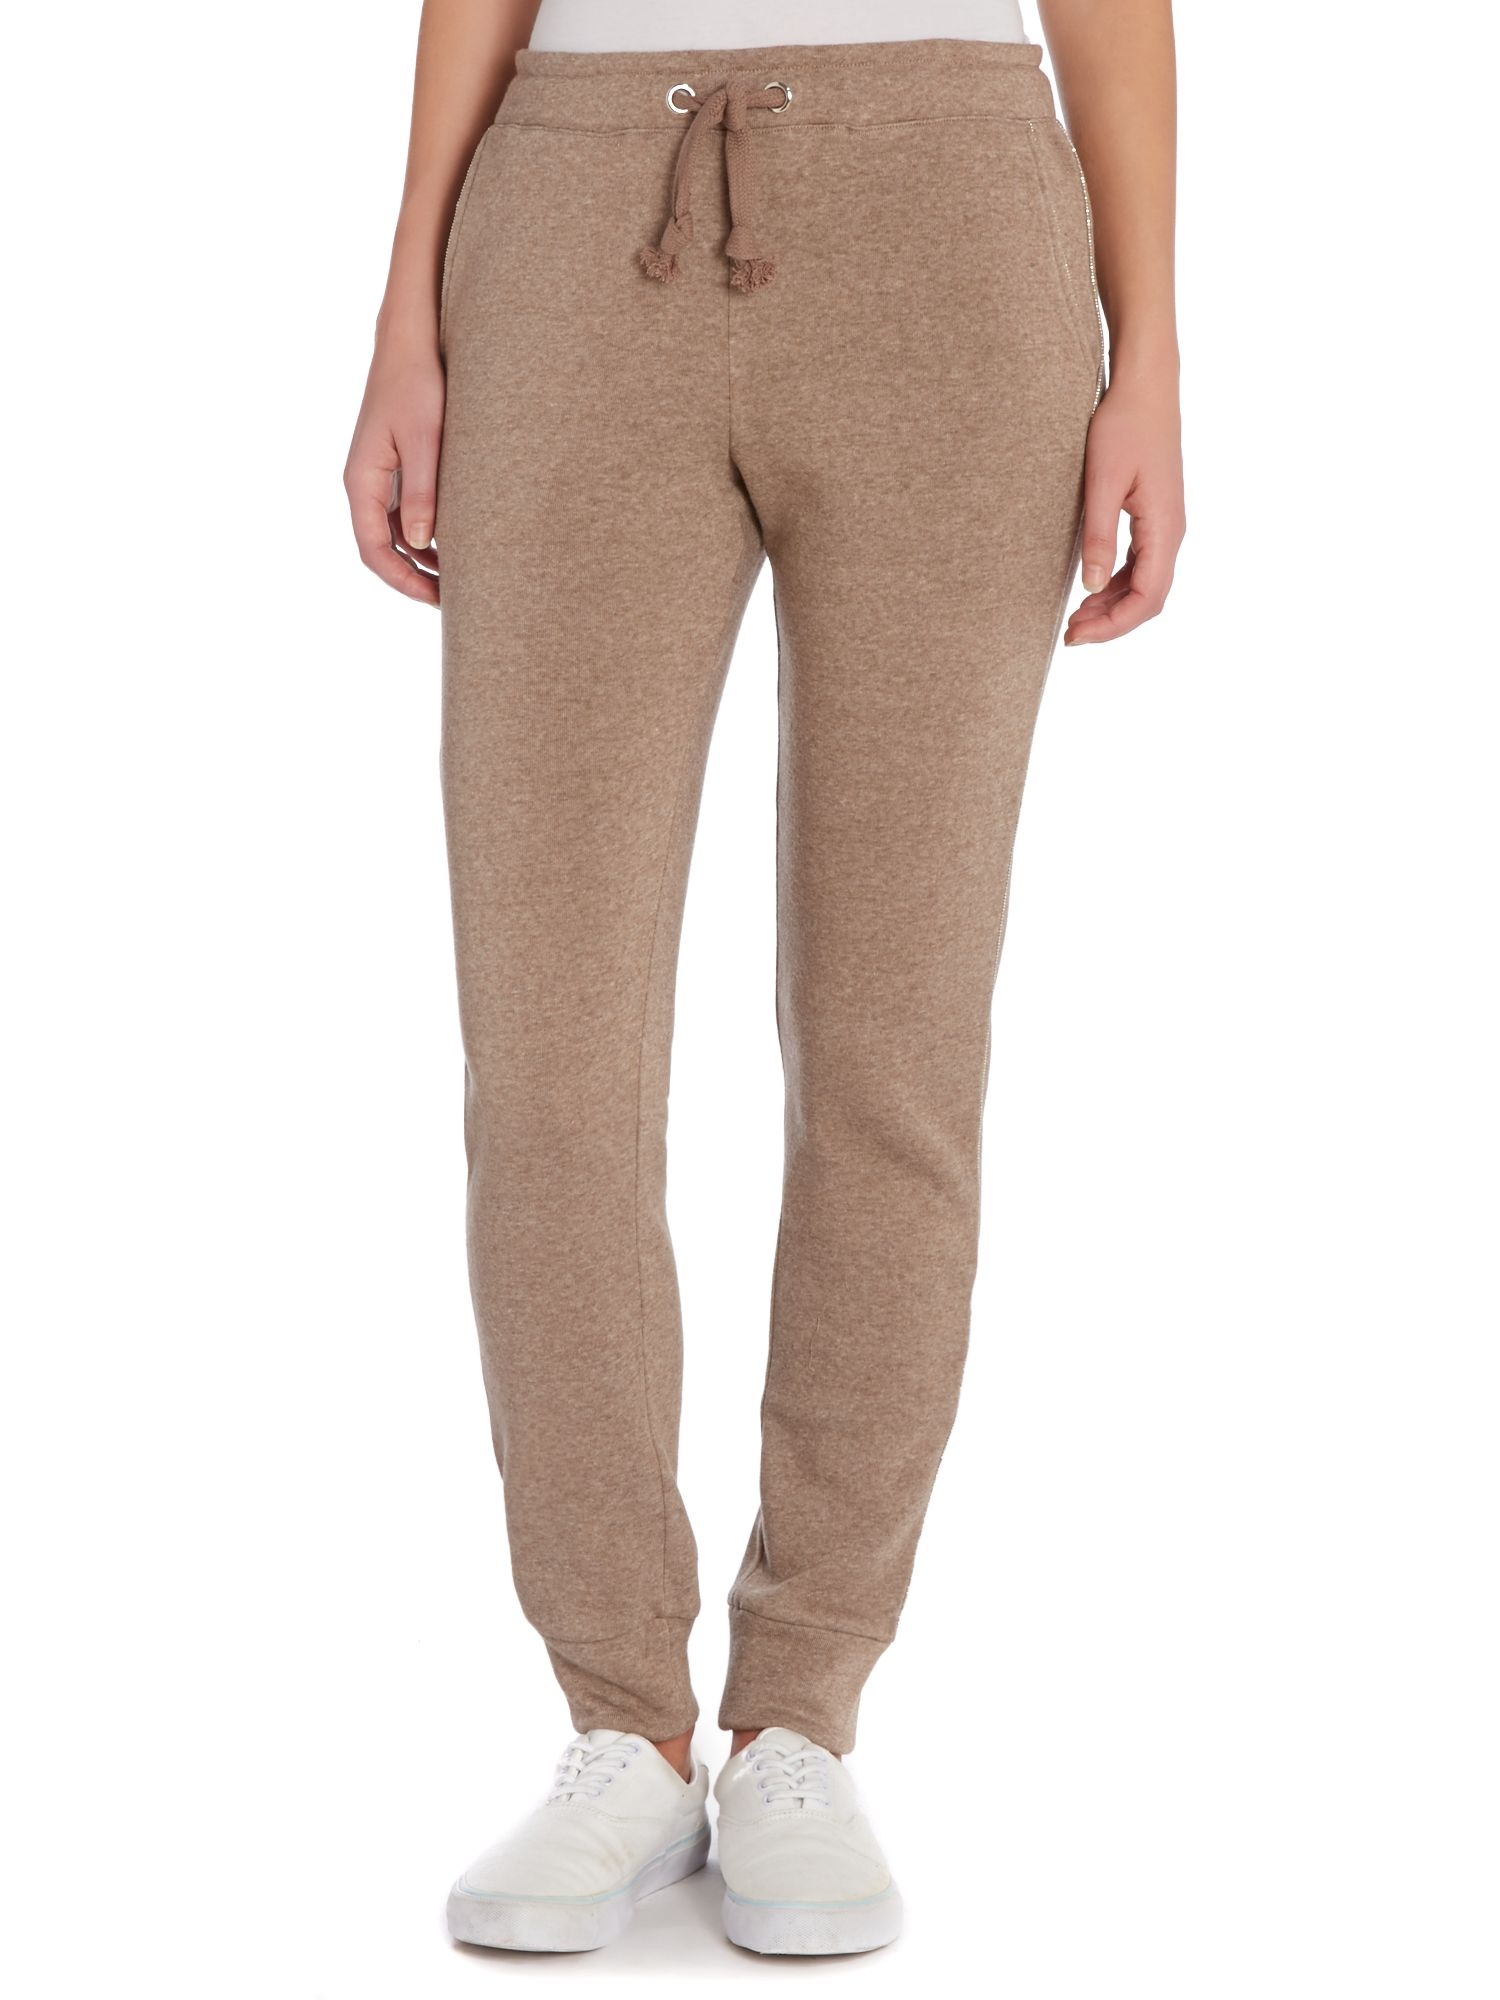 Jogging bottoms with a logo